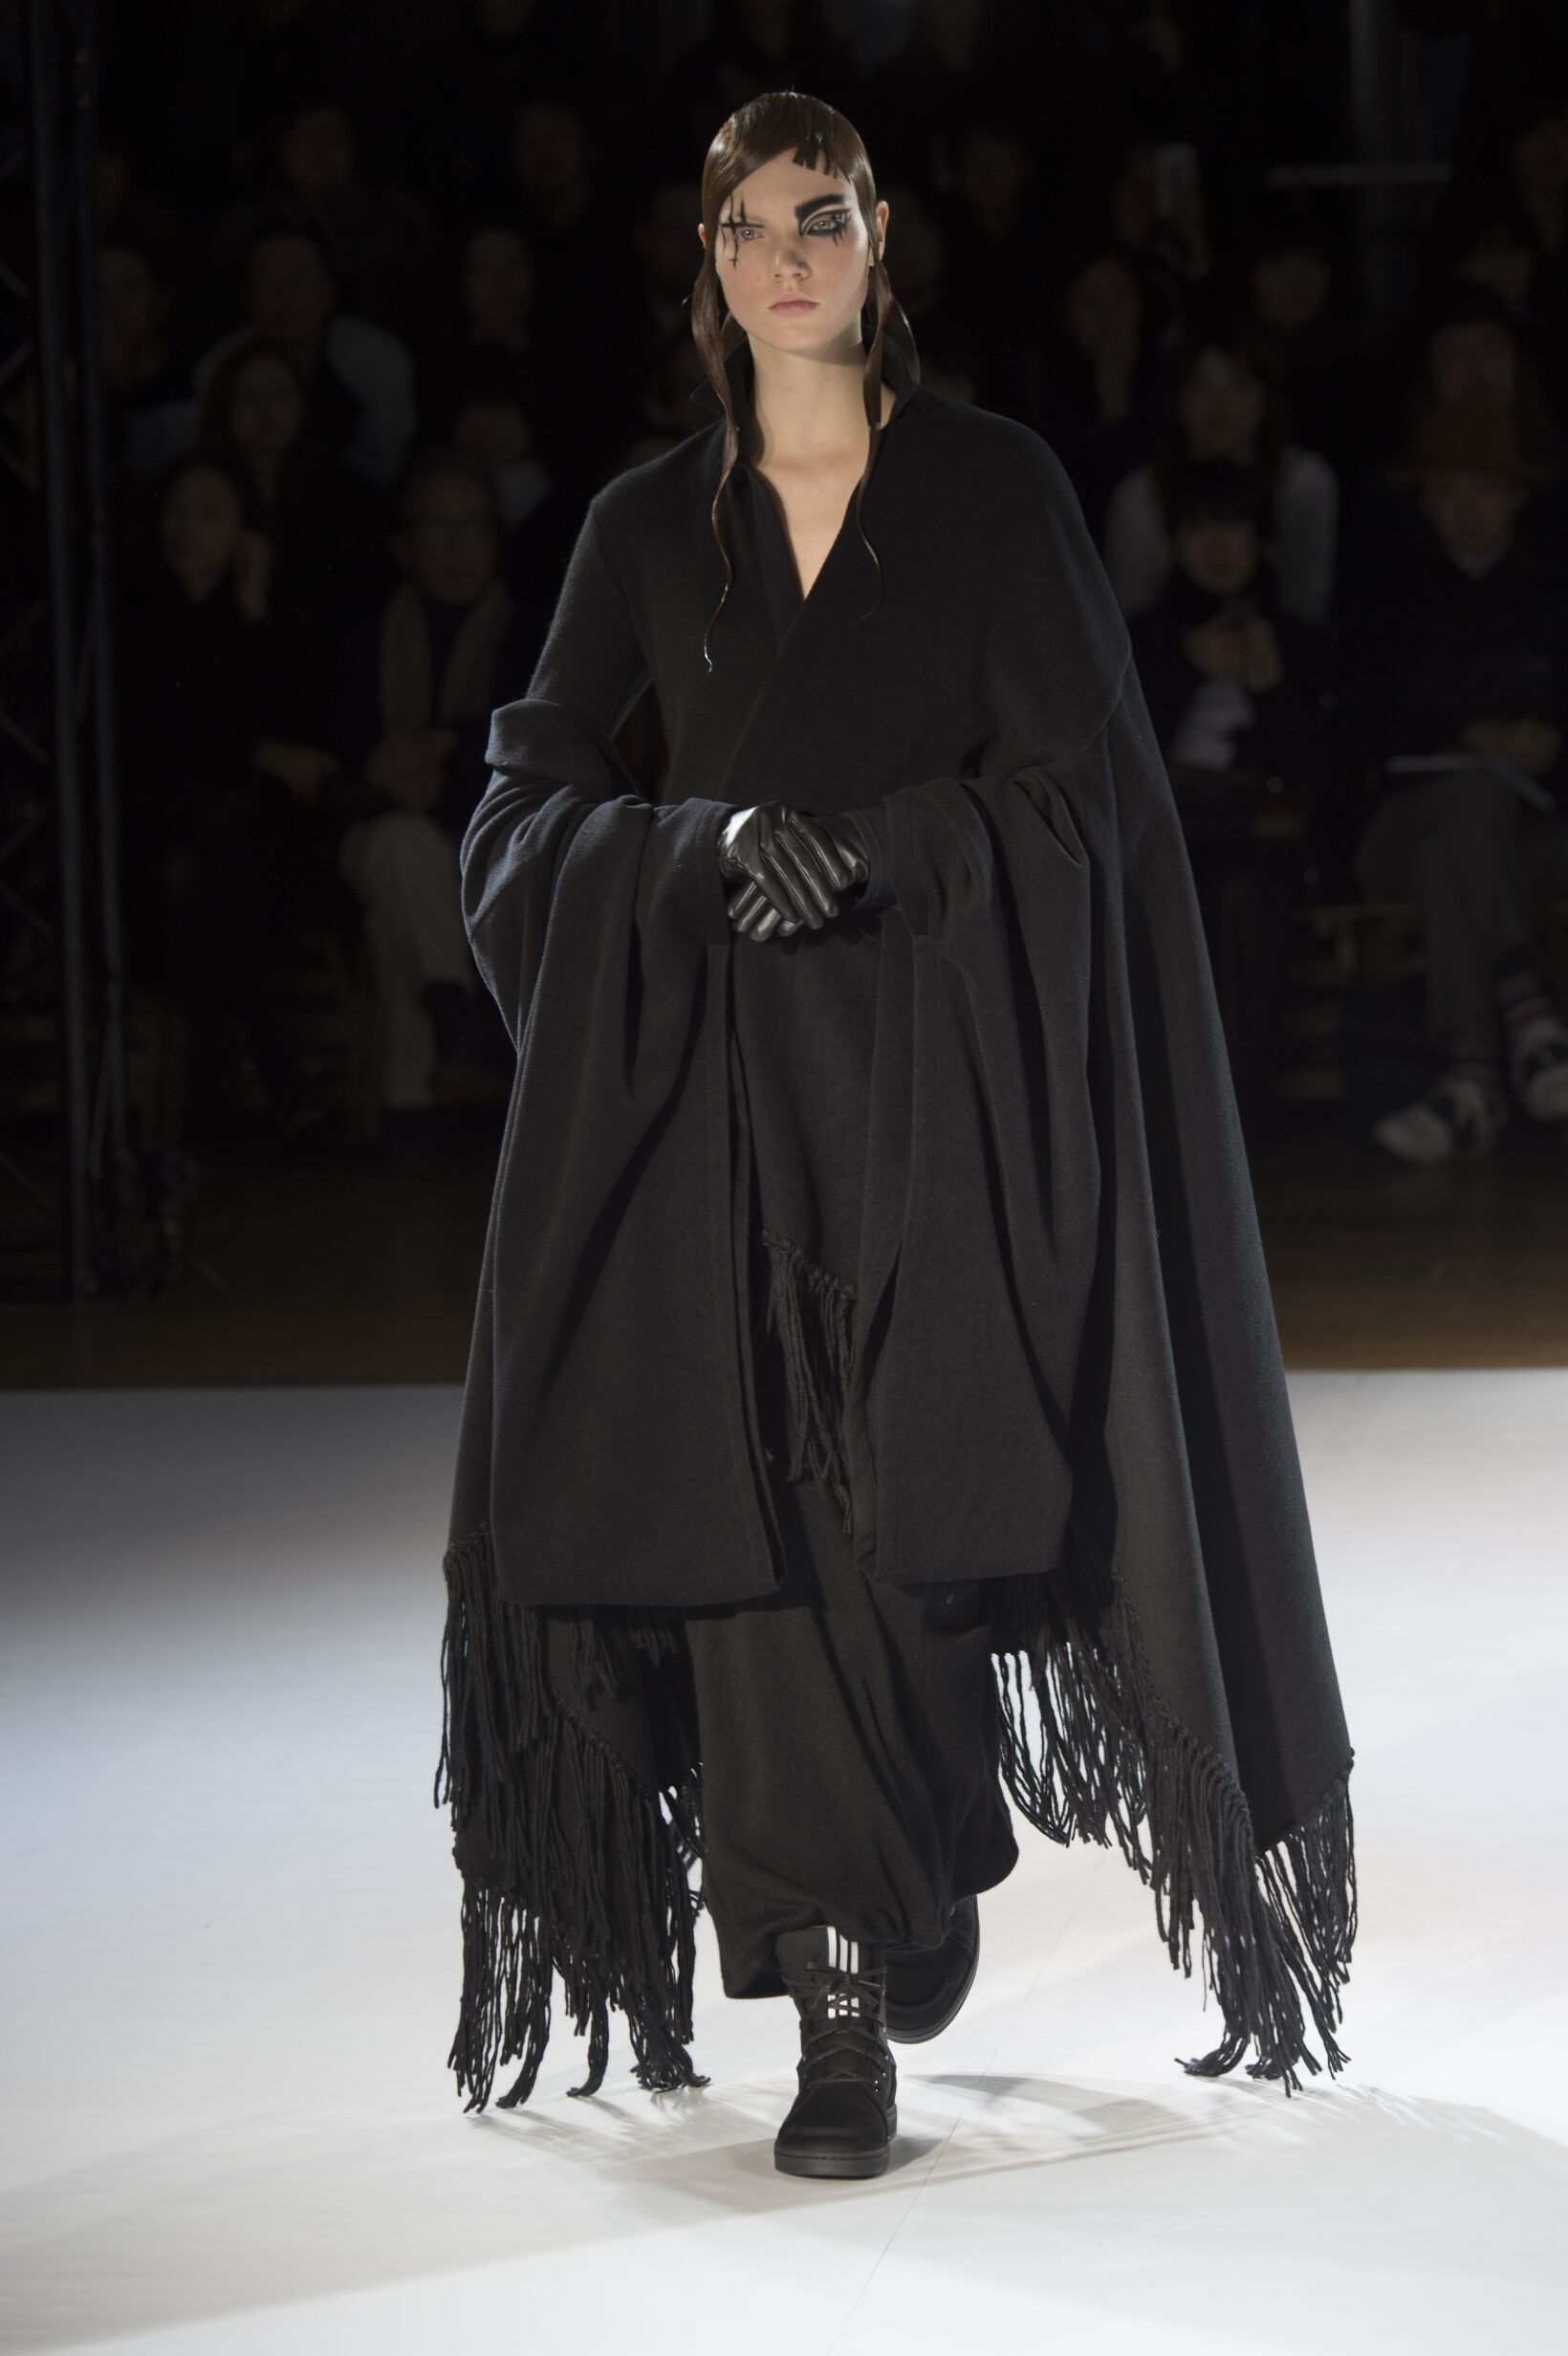 Yohji Yamamoto Fall Winter 2015 16 Women's Collection Paris Fashion Week